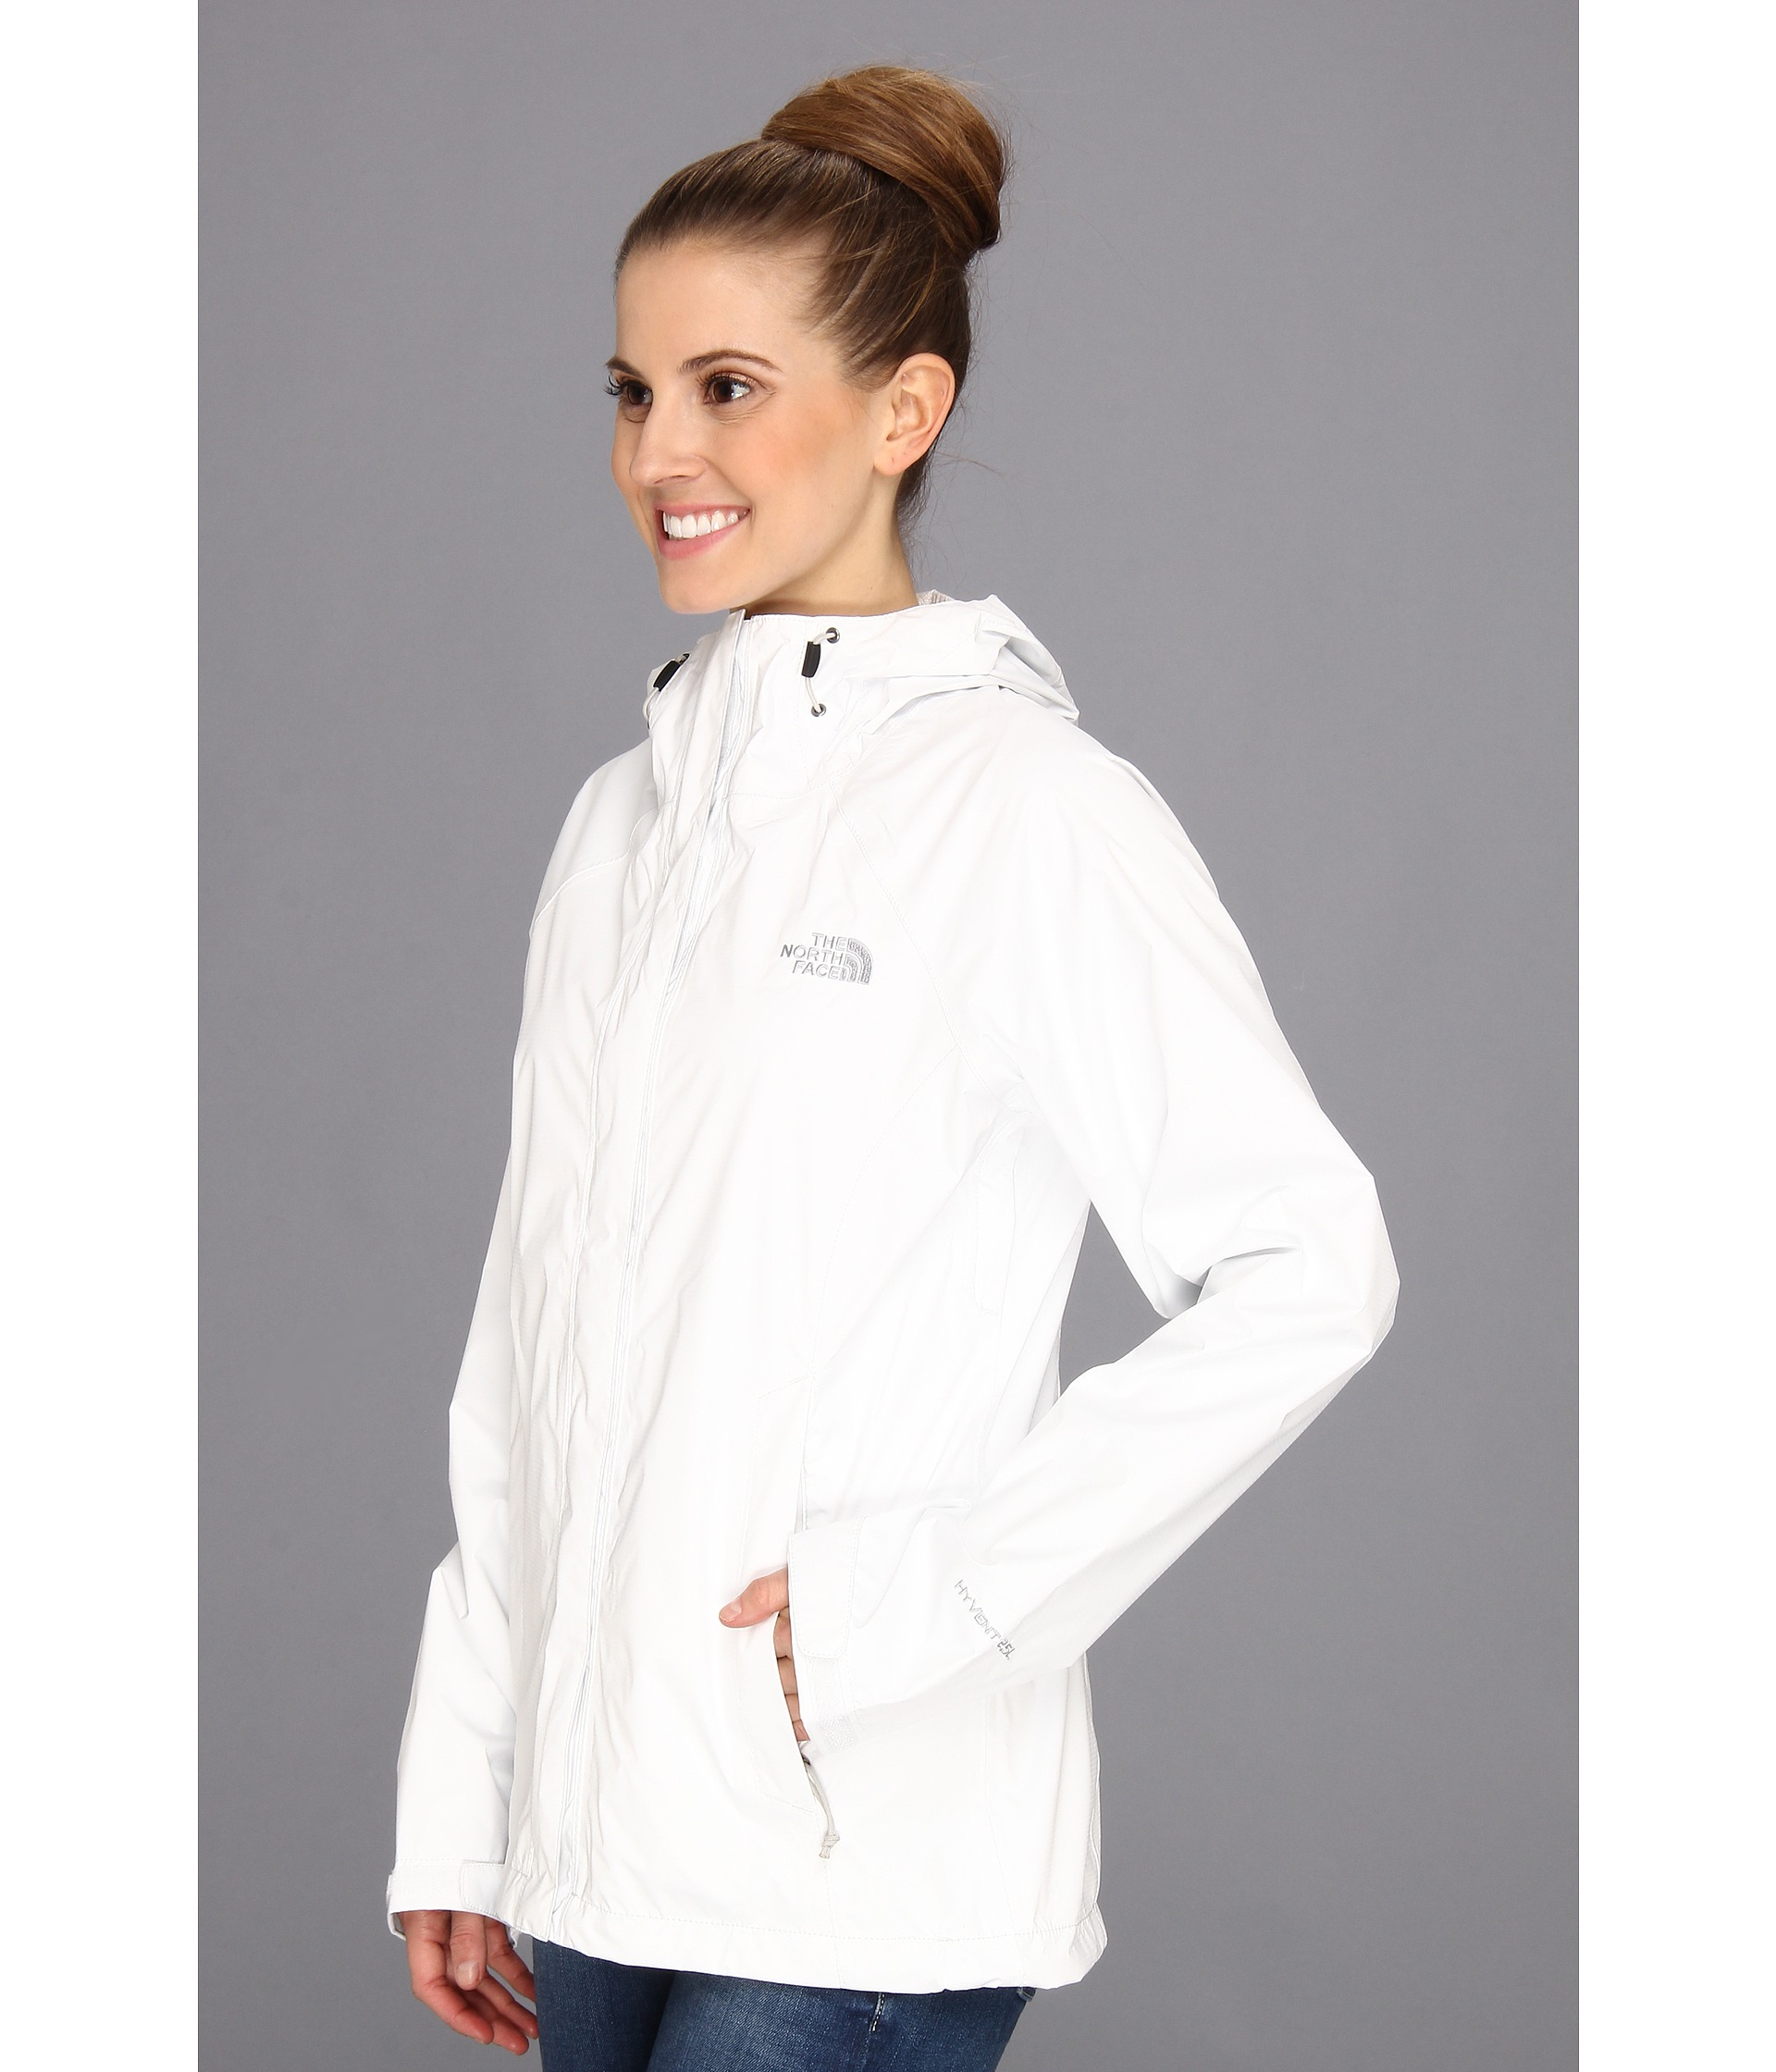 eea52c786 czech the north face venture jacket white 6fa3a 10cb4